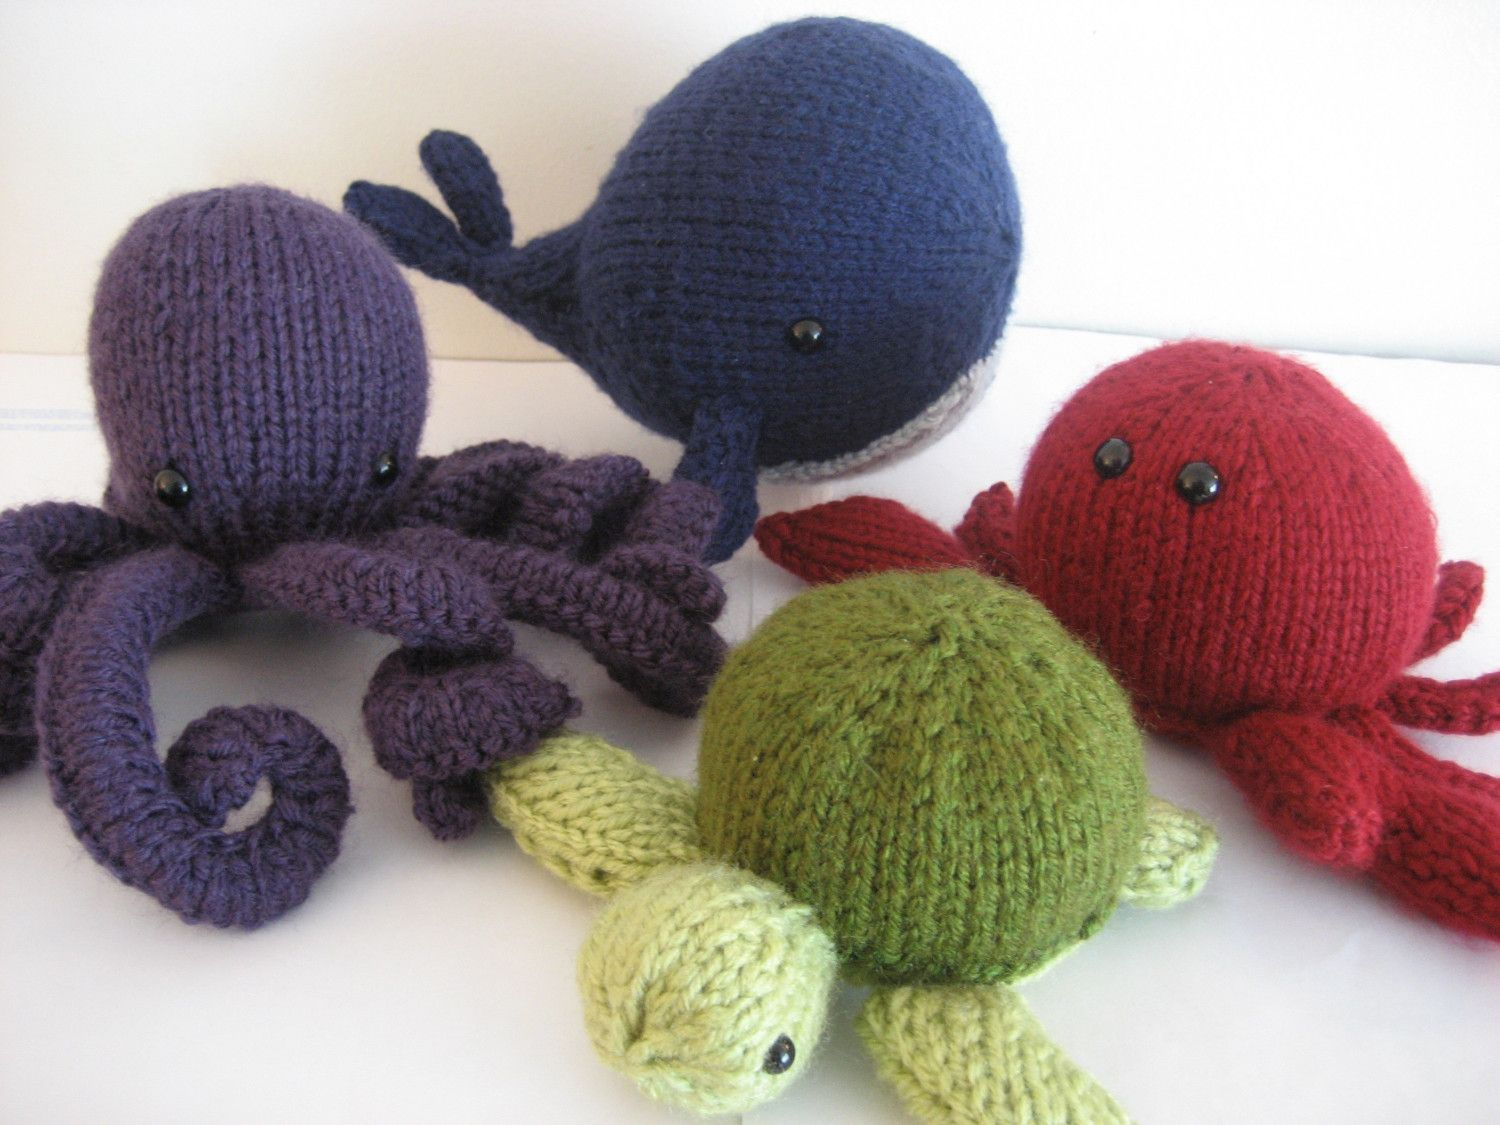 Free knitted octopus pattern pdf knit amigurumi sea creatures free knitted octopus pattern pdf knit amigurumi sea creatures pattern by amy by amygaines dt1010fo